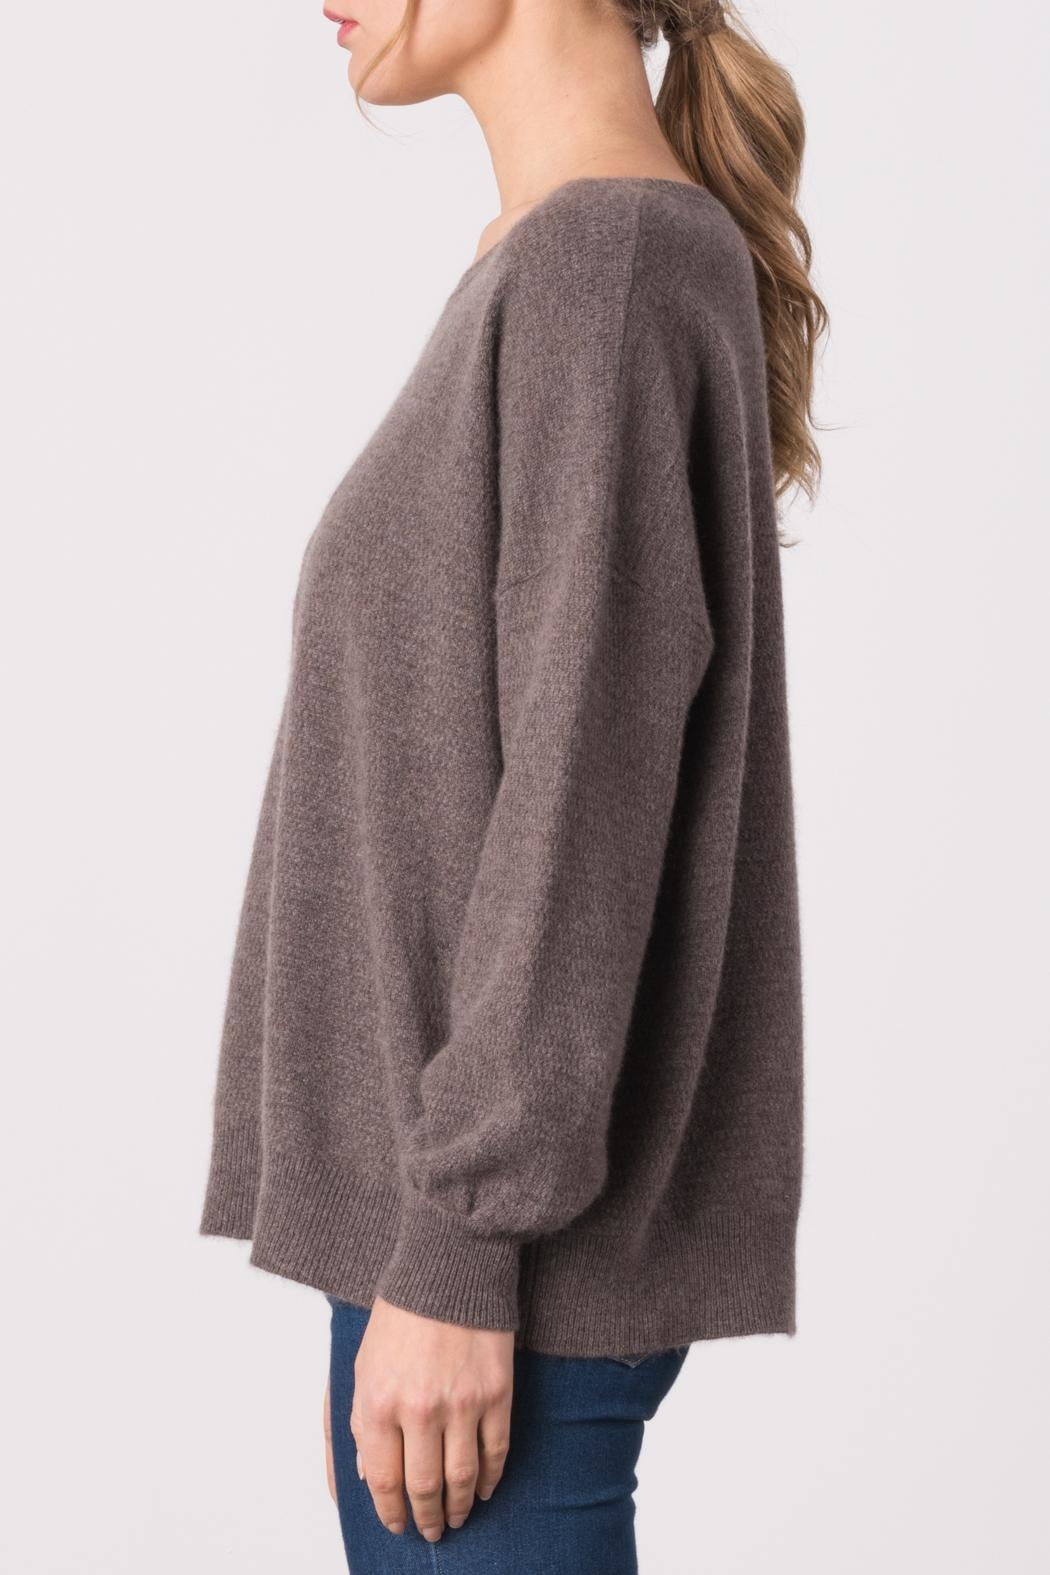 Margaret O'Leary Naya Pullover Top - Side Cropped Image